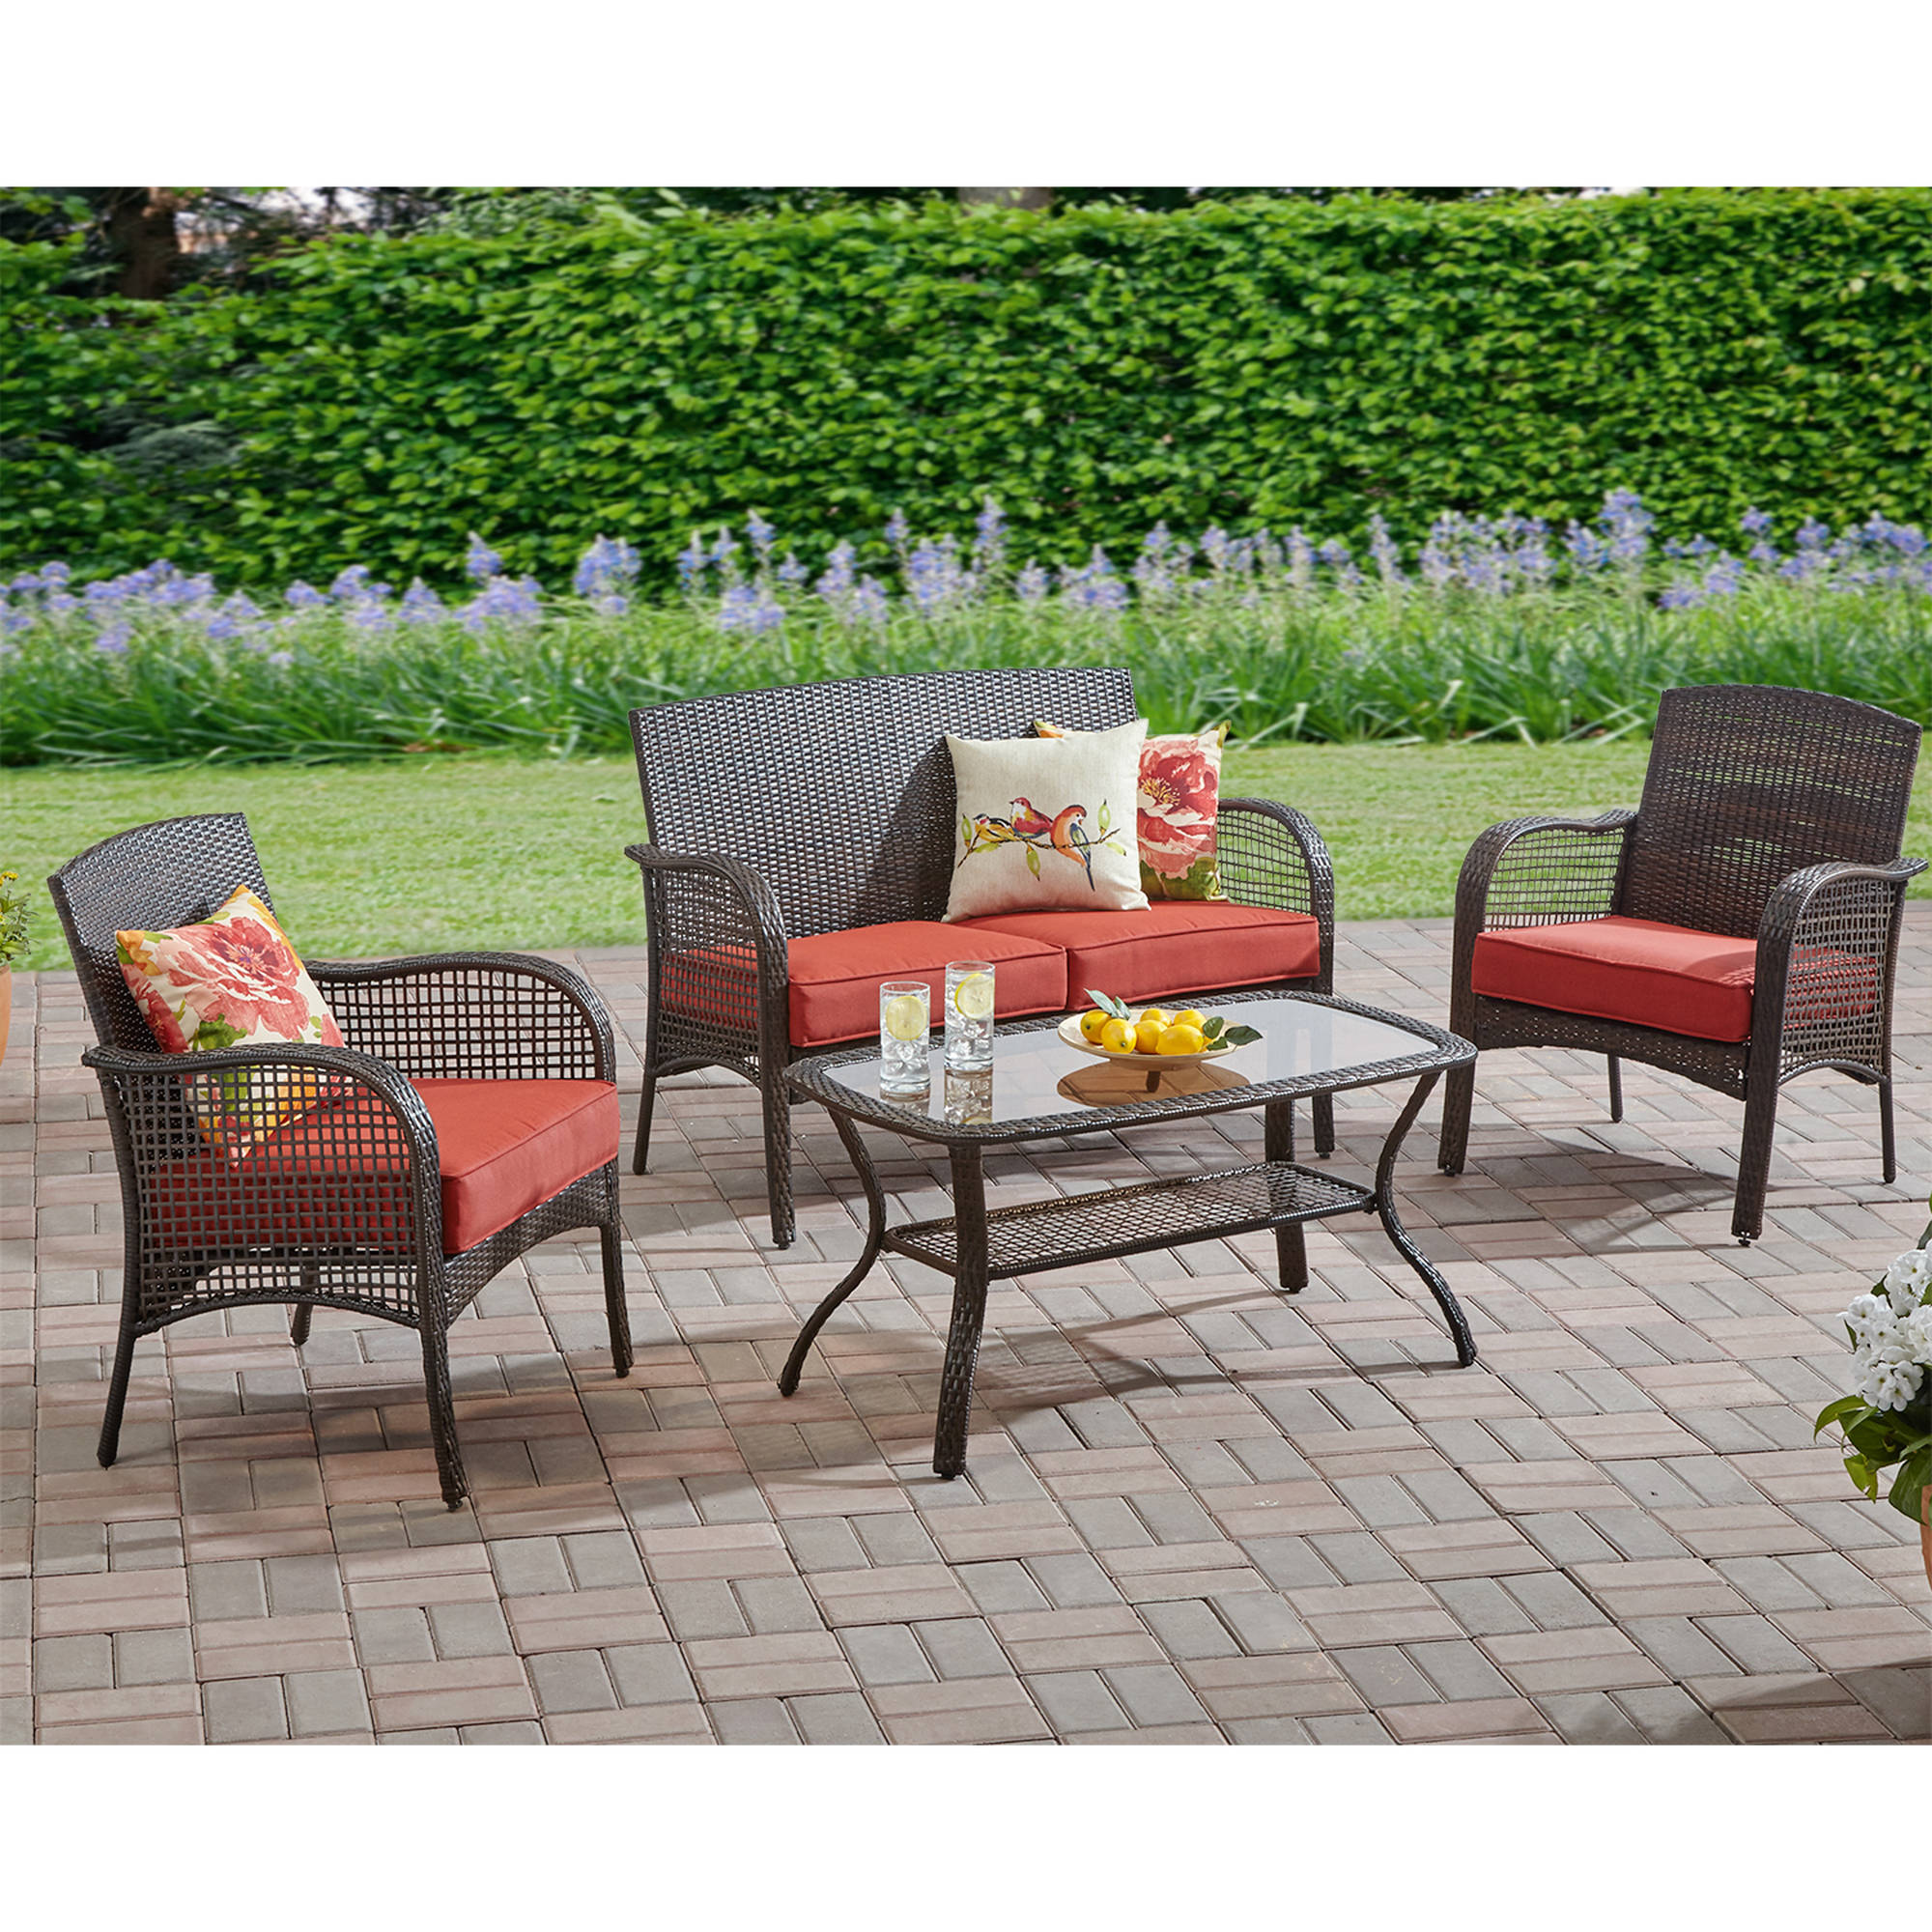 Mainstays Cambridge Park 4 Piece Outdoor Conversation Set Seats 4